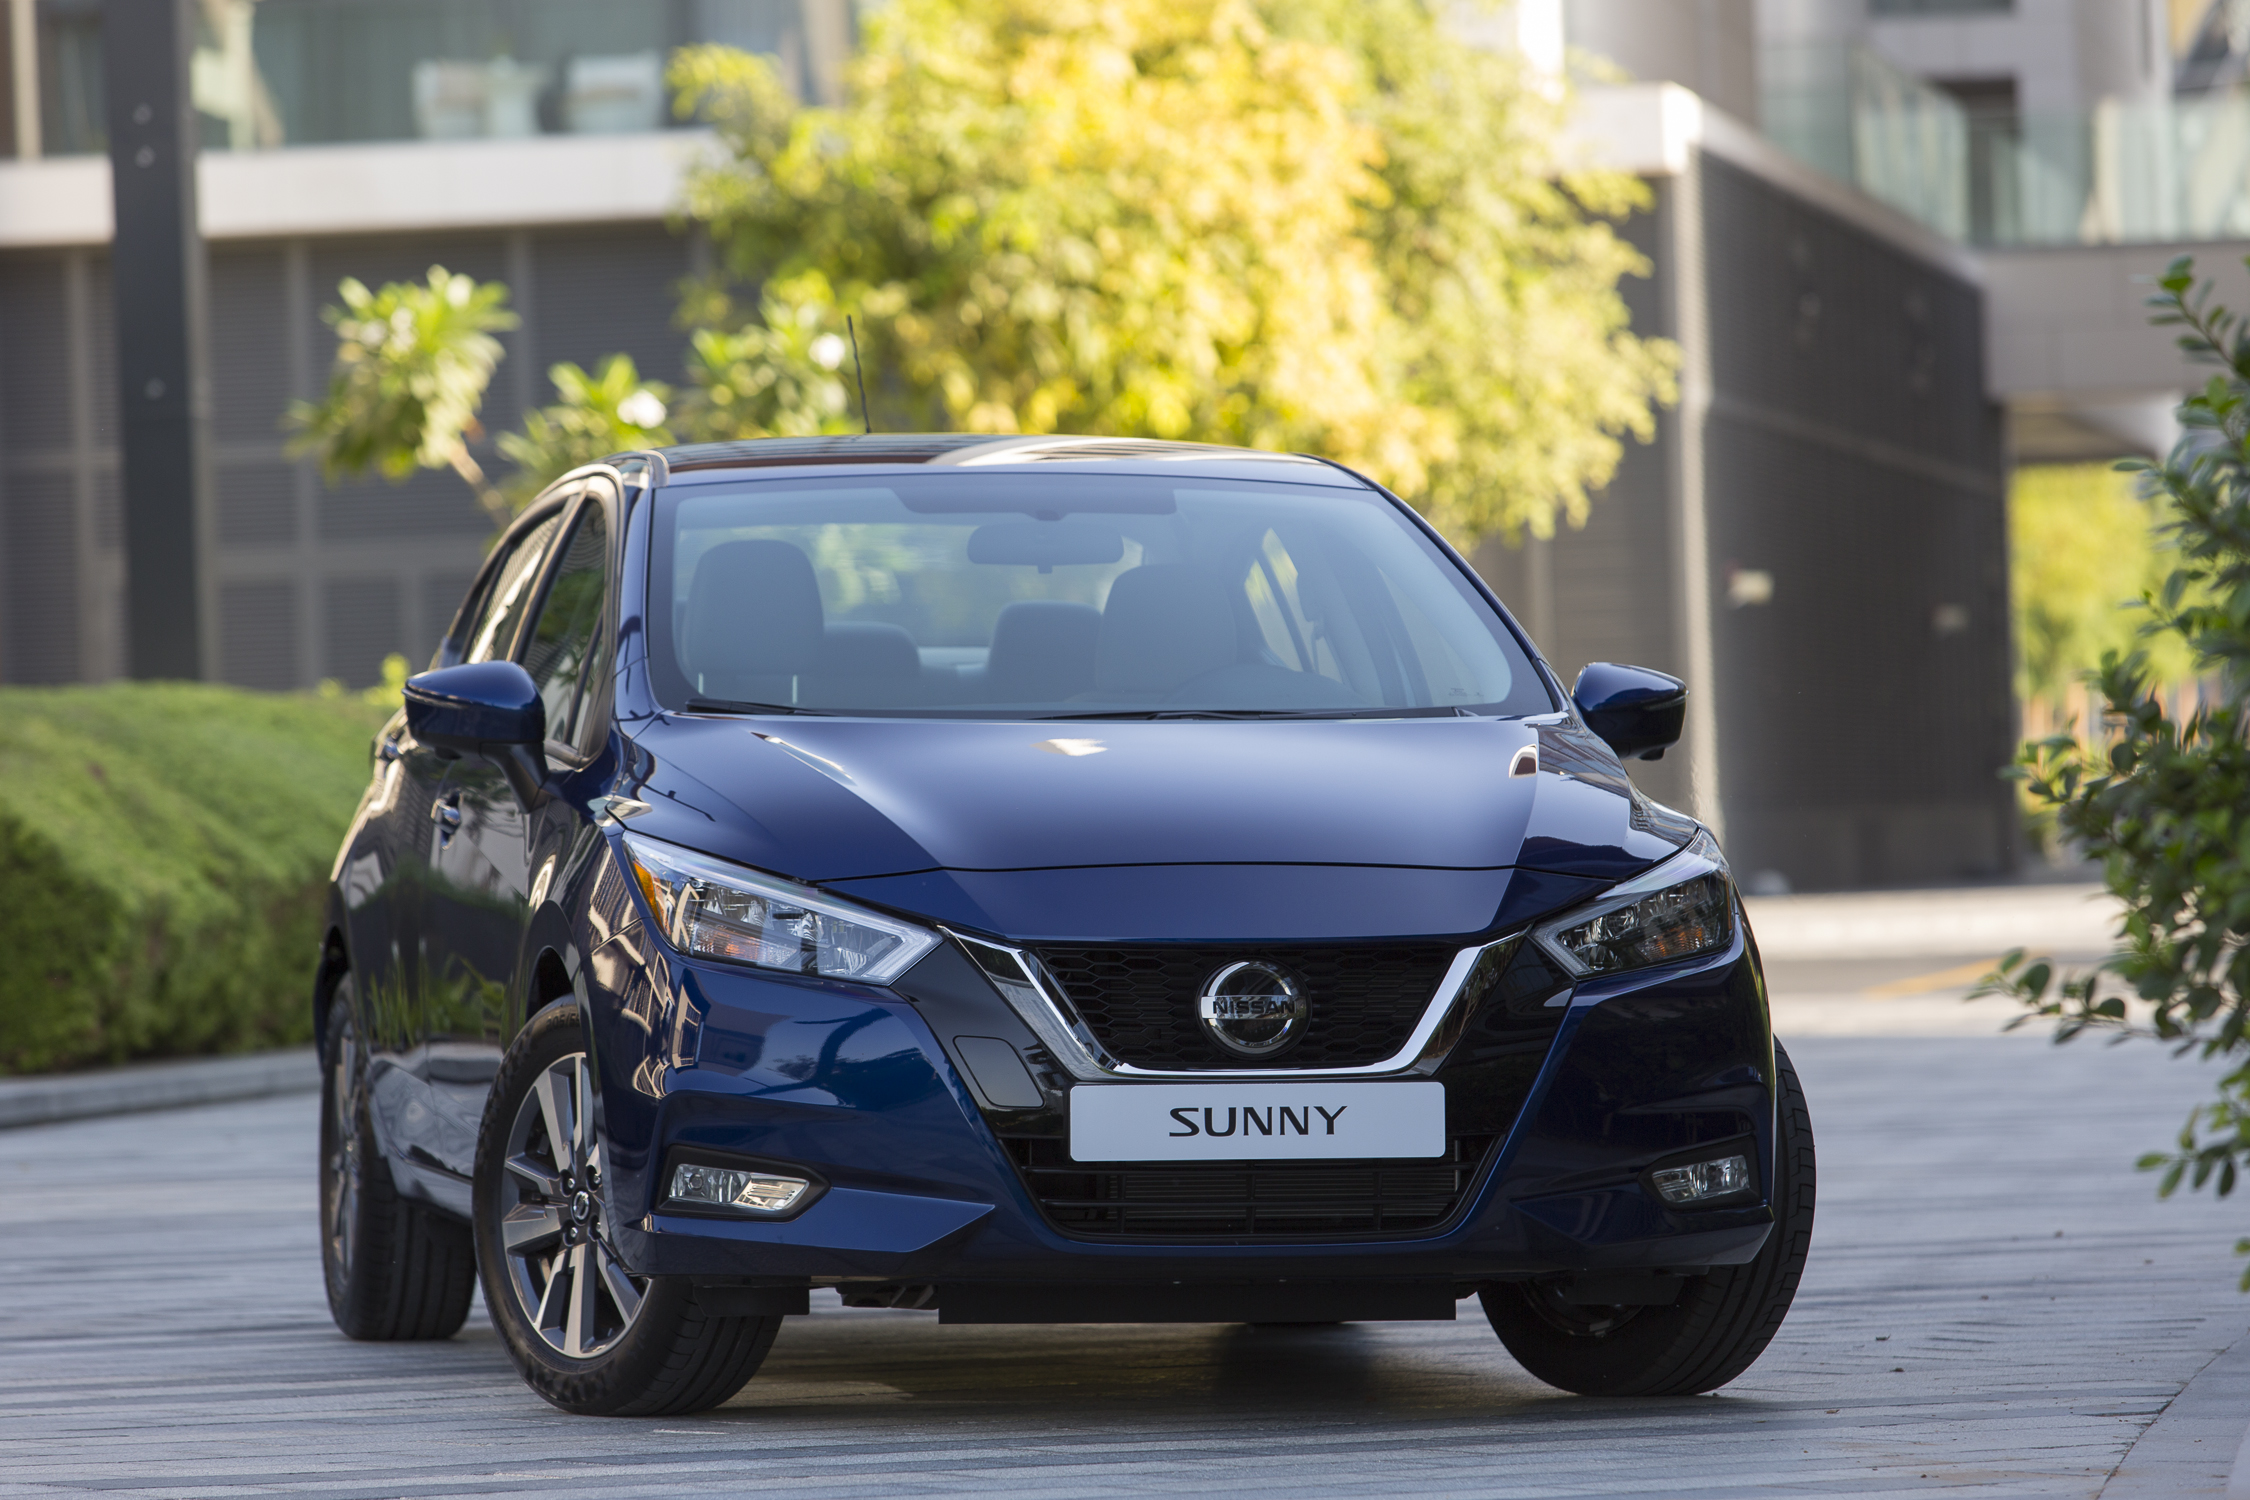 2020 Nissan Sunny Uae Egypt Exterior and Interior